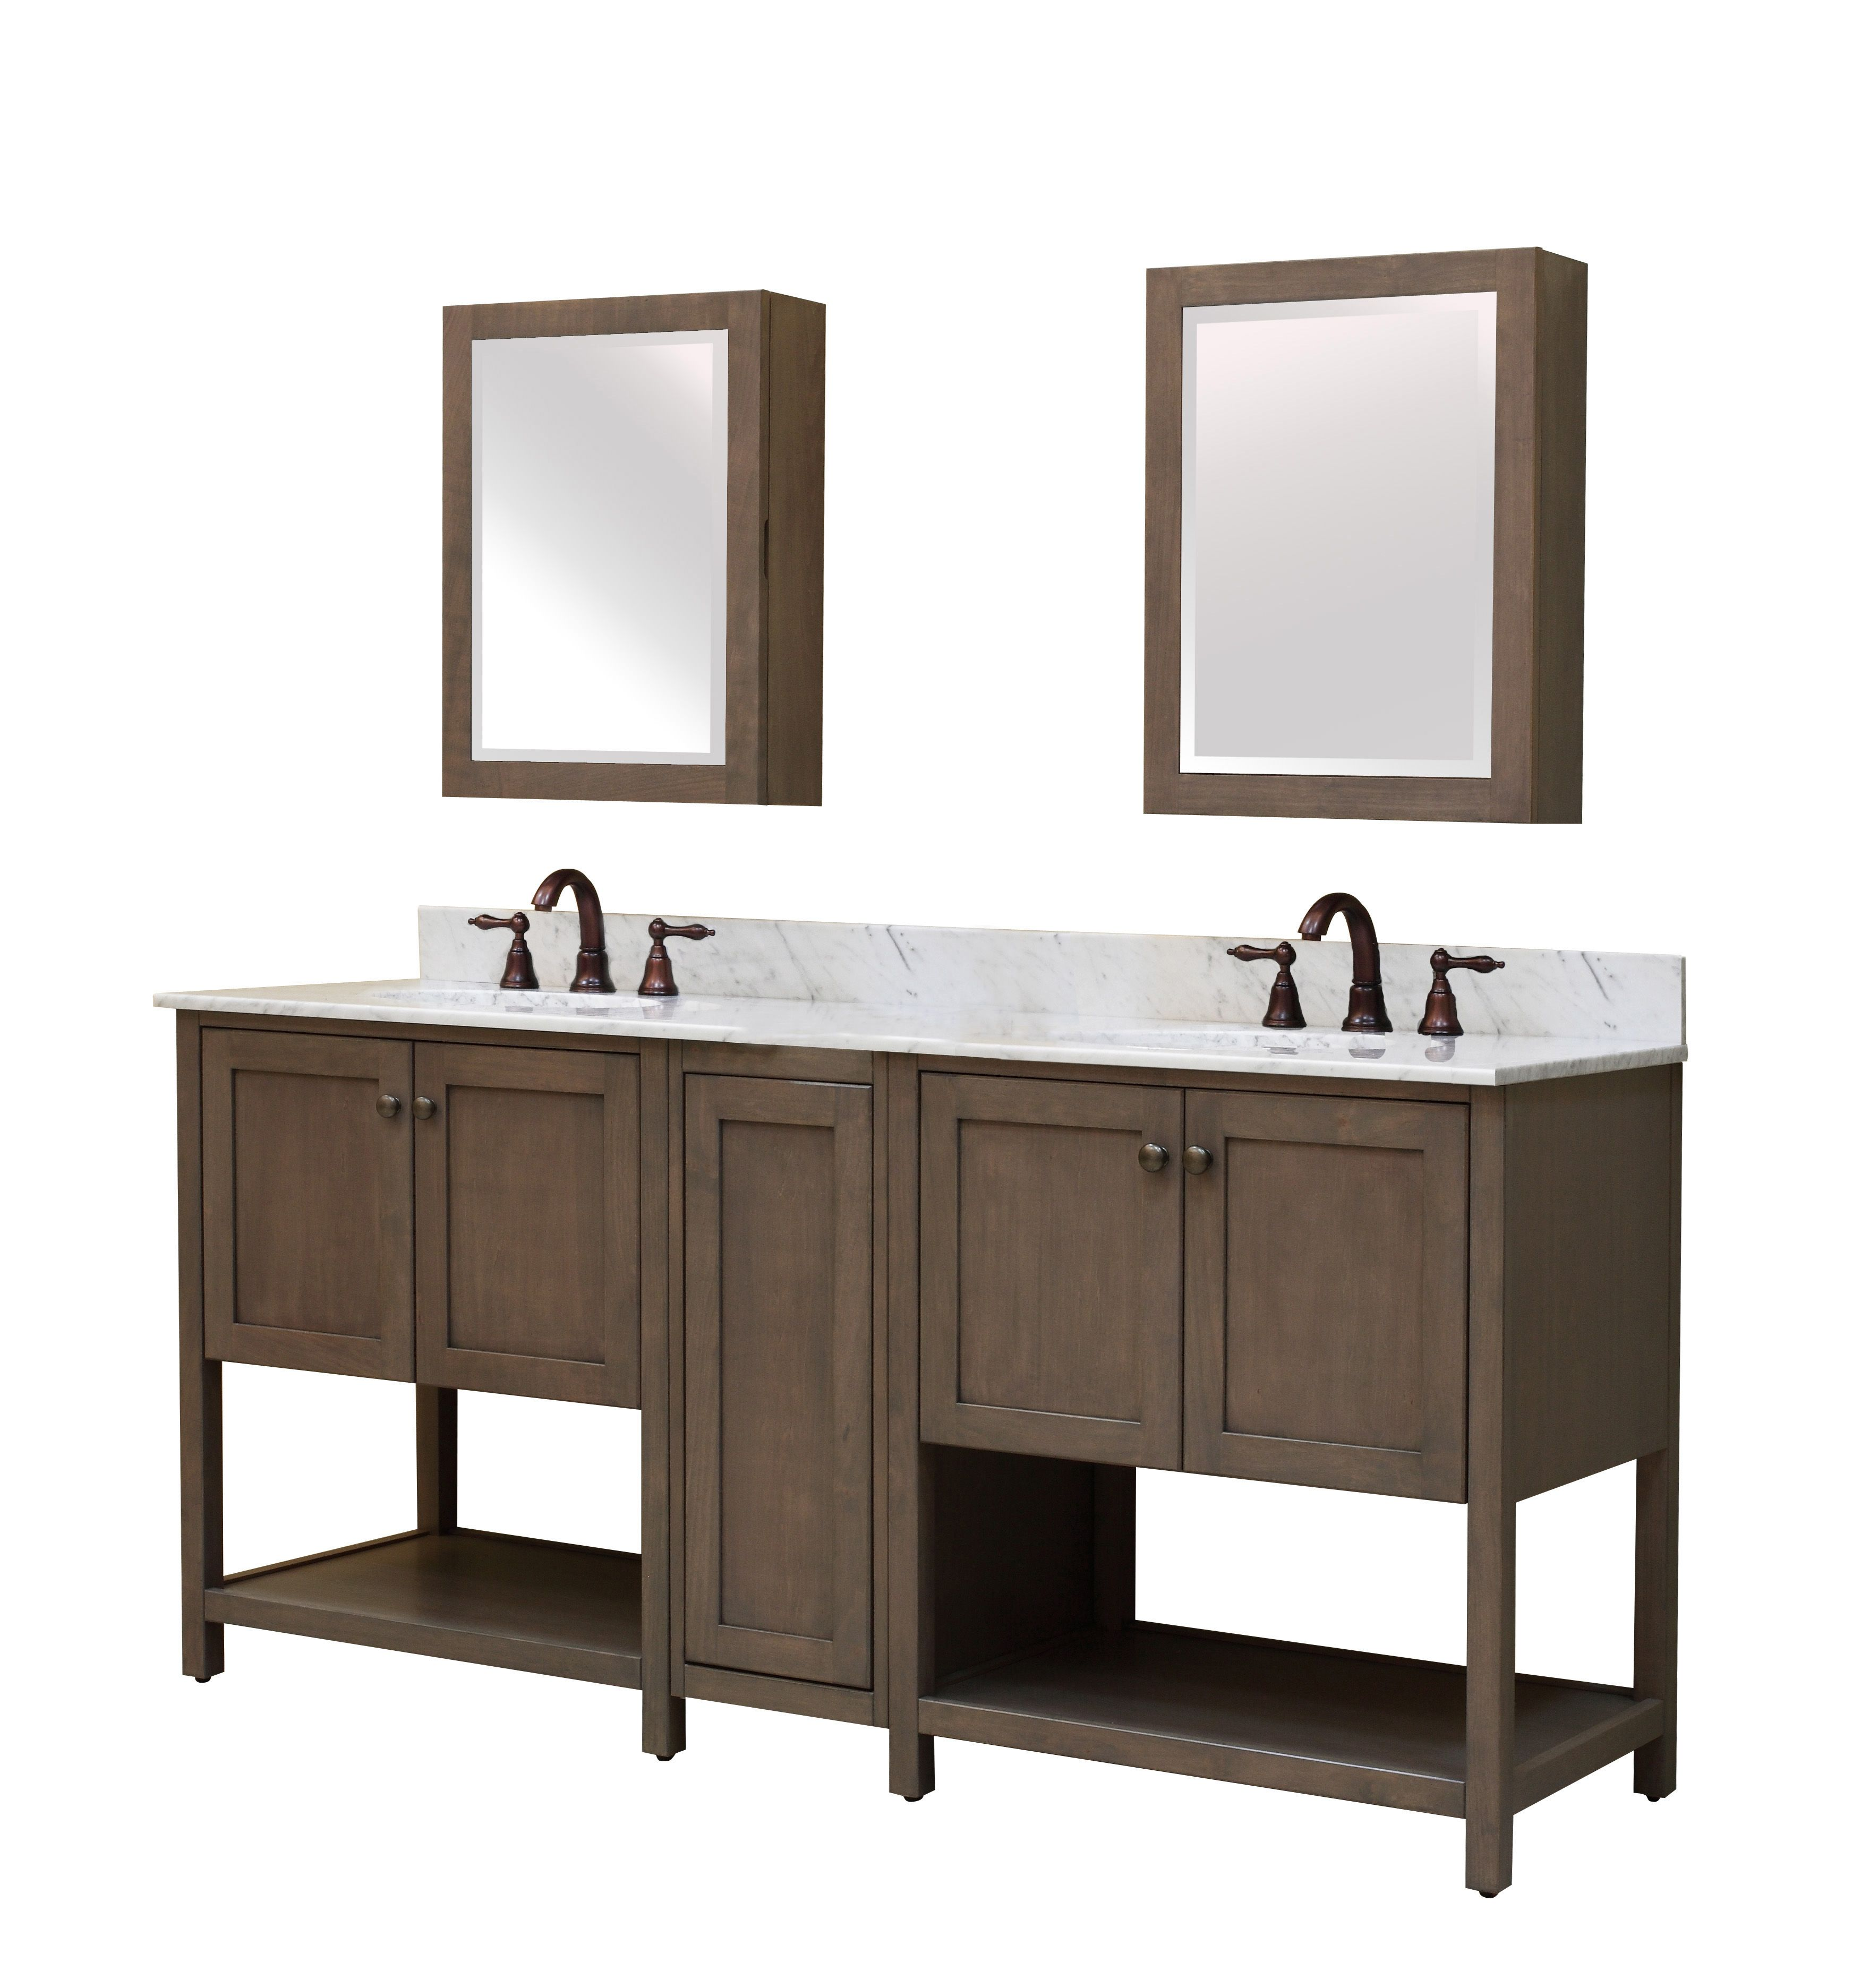 New The Aiden Modular Bath Vanity Collection From Sunny Wood 100 Water Based Designer Taupe Finish Find Out